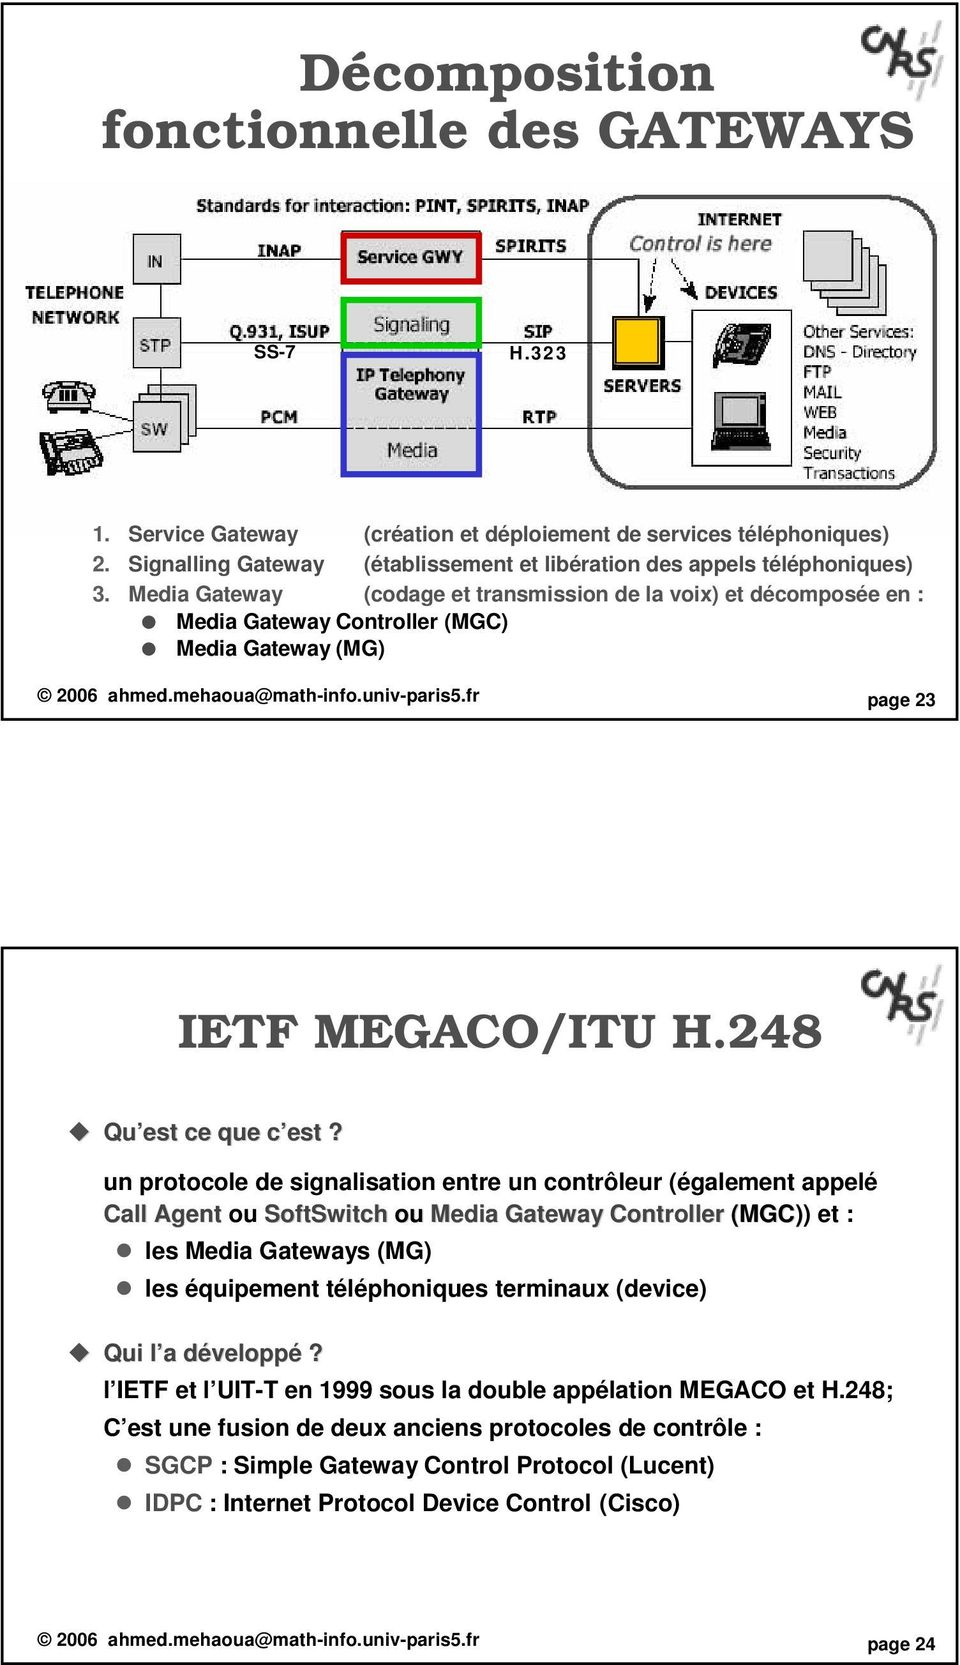 Media Gateway (codage et transmission de la voix) et décomposée en : Media Gateway Controller (MGC) Media Gateway (MG) 2006 ahmed.mehaoua@math-info.univ-paris5.fr page 23 IETF MEGACO/ITU H.